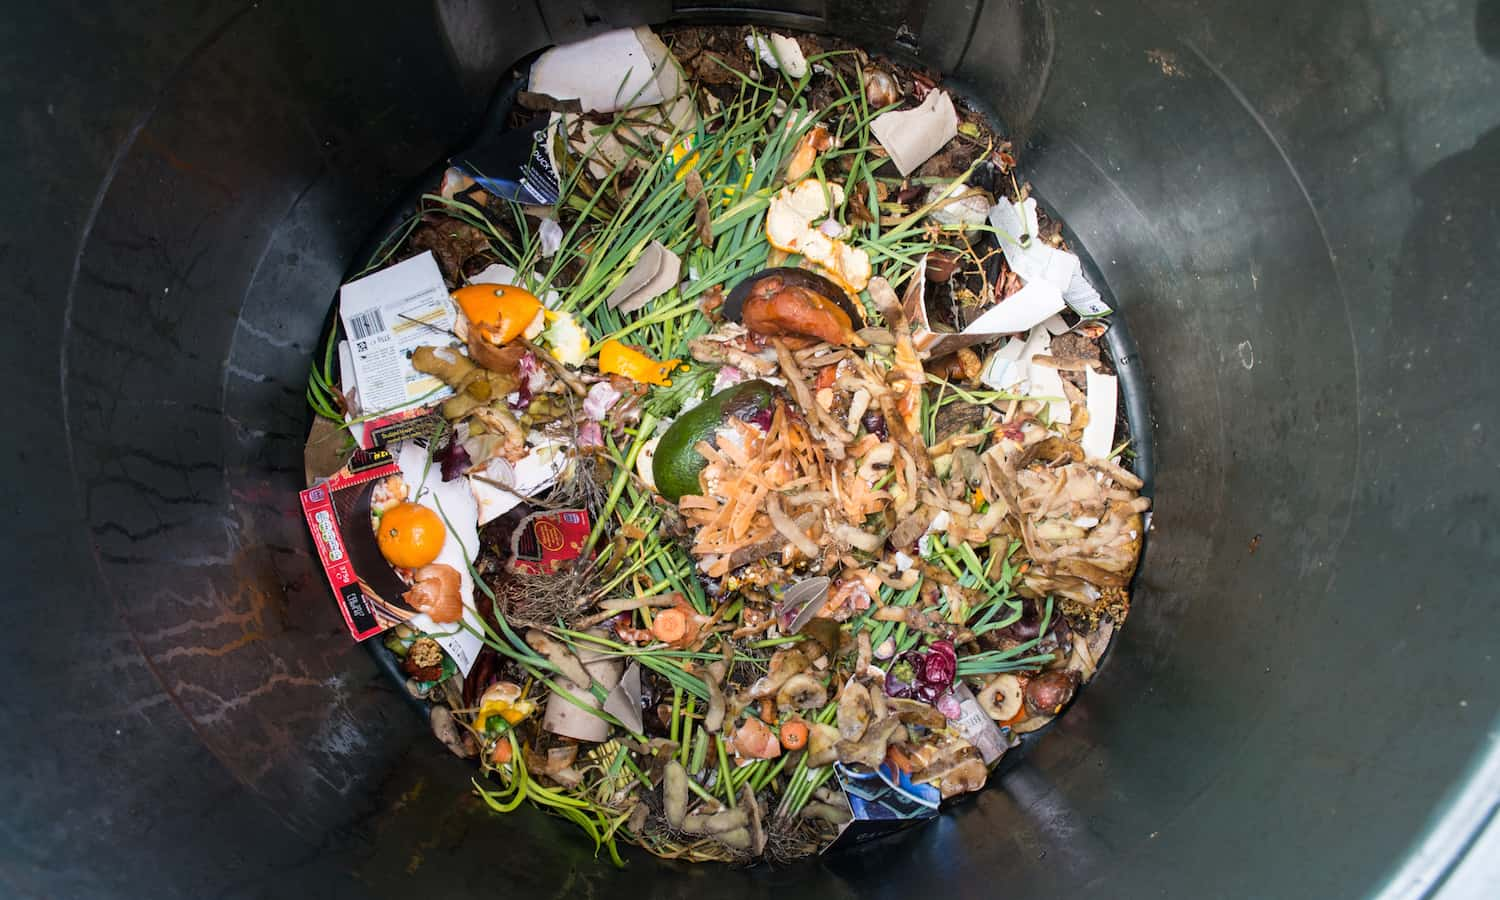 For Stop Food Waste Day, Food Tank is celebrating efforts to increase awareness and reduce food waste.